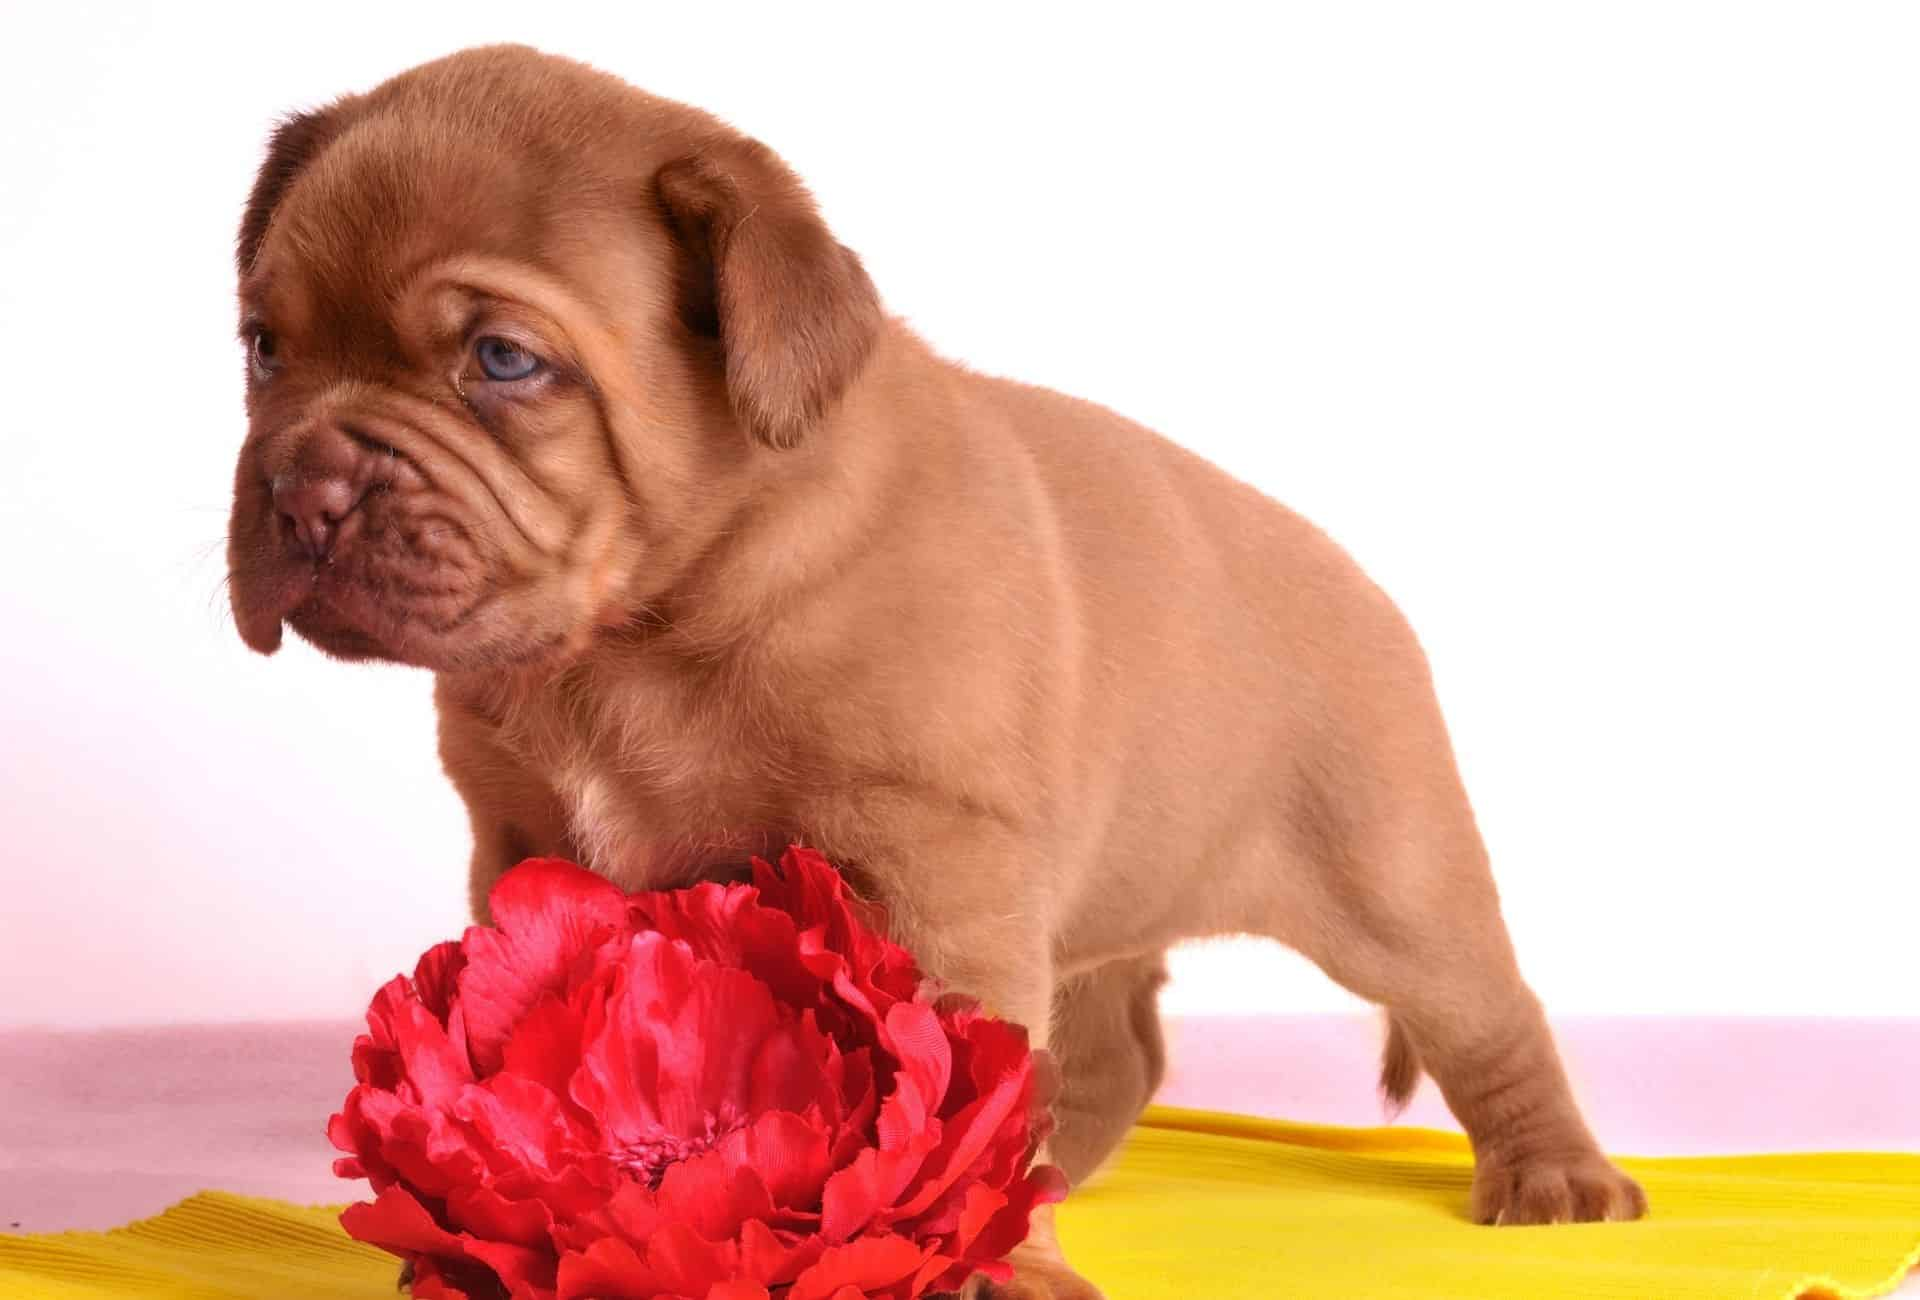 Sweet Dogue De Bordeaux puppy with blue eyes.